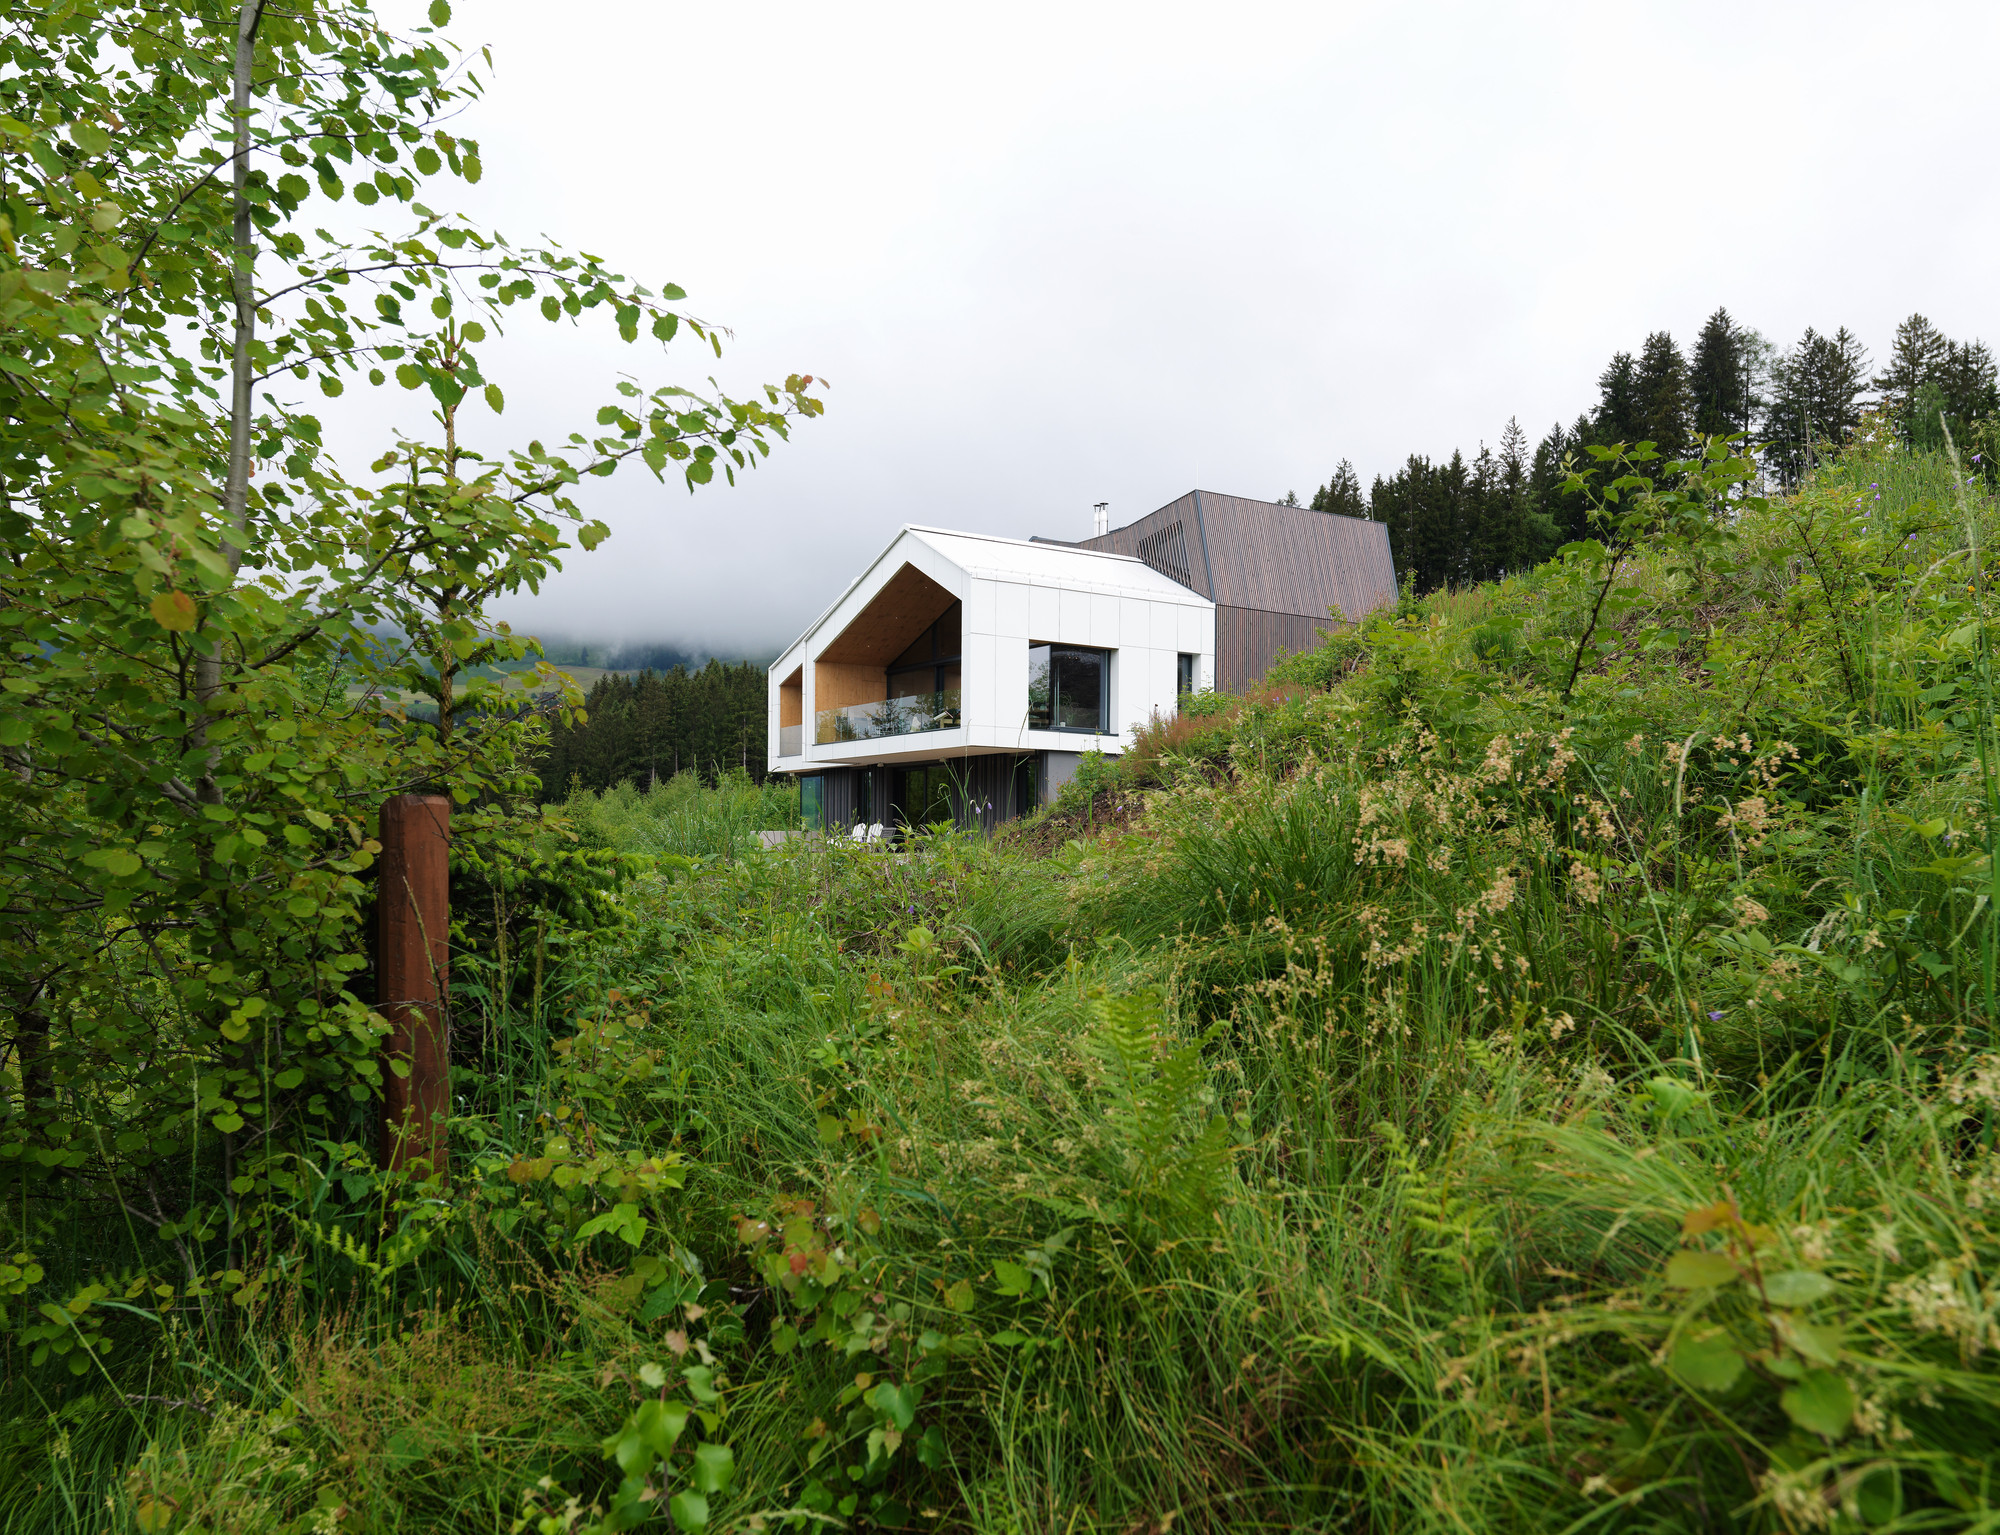 Mountain view house sono arhitekti archdaily for Mtn house